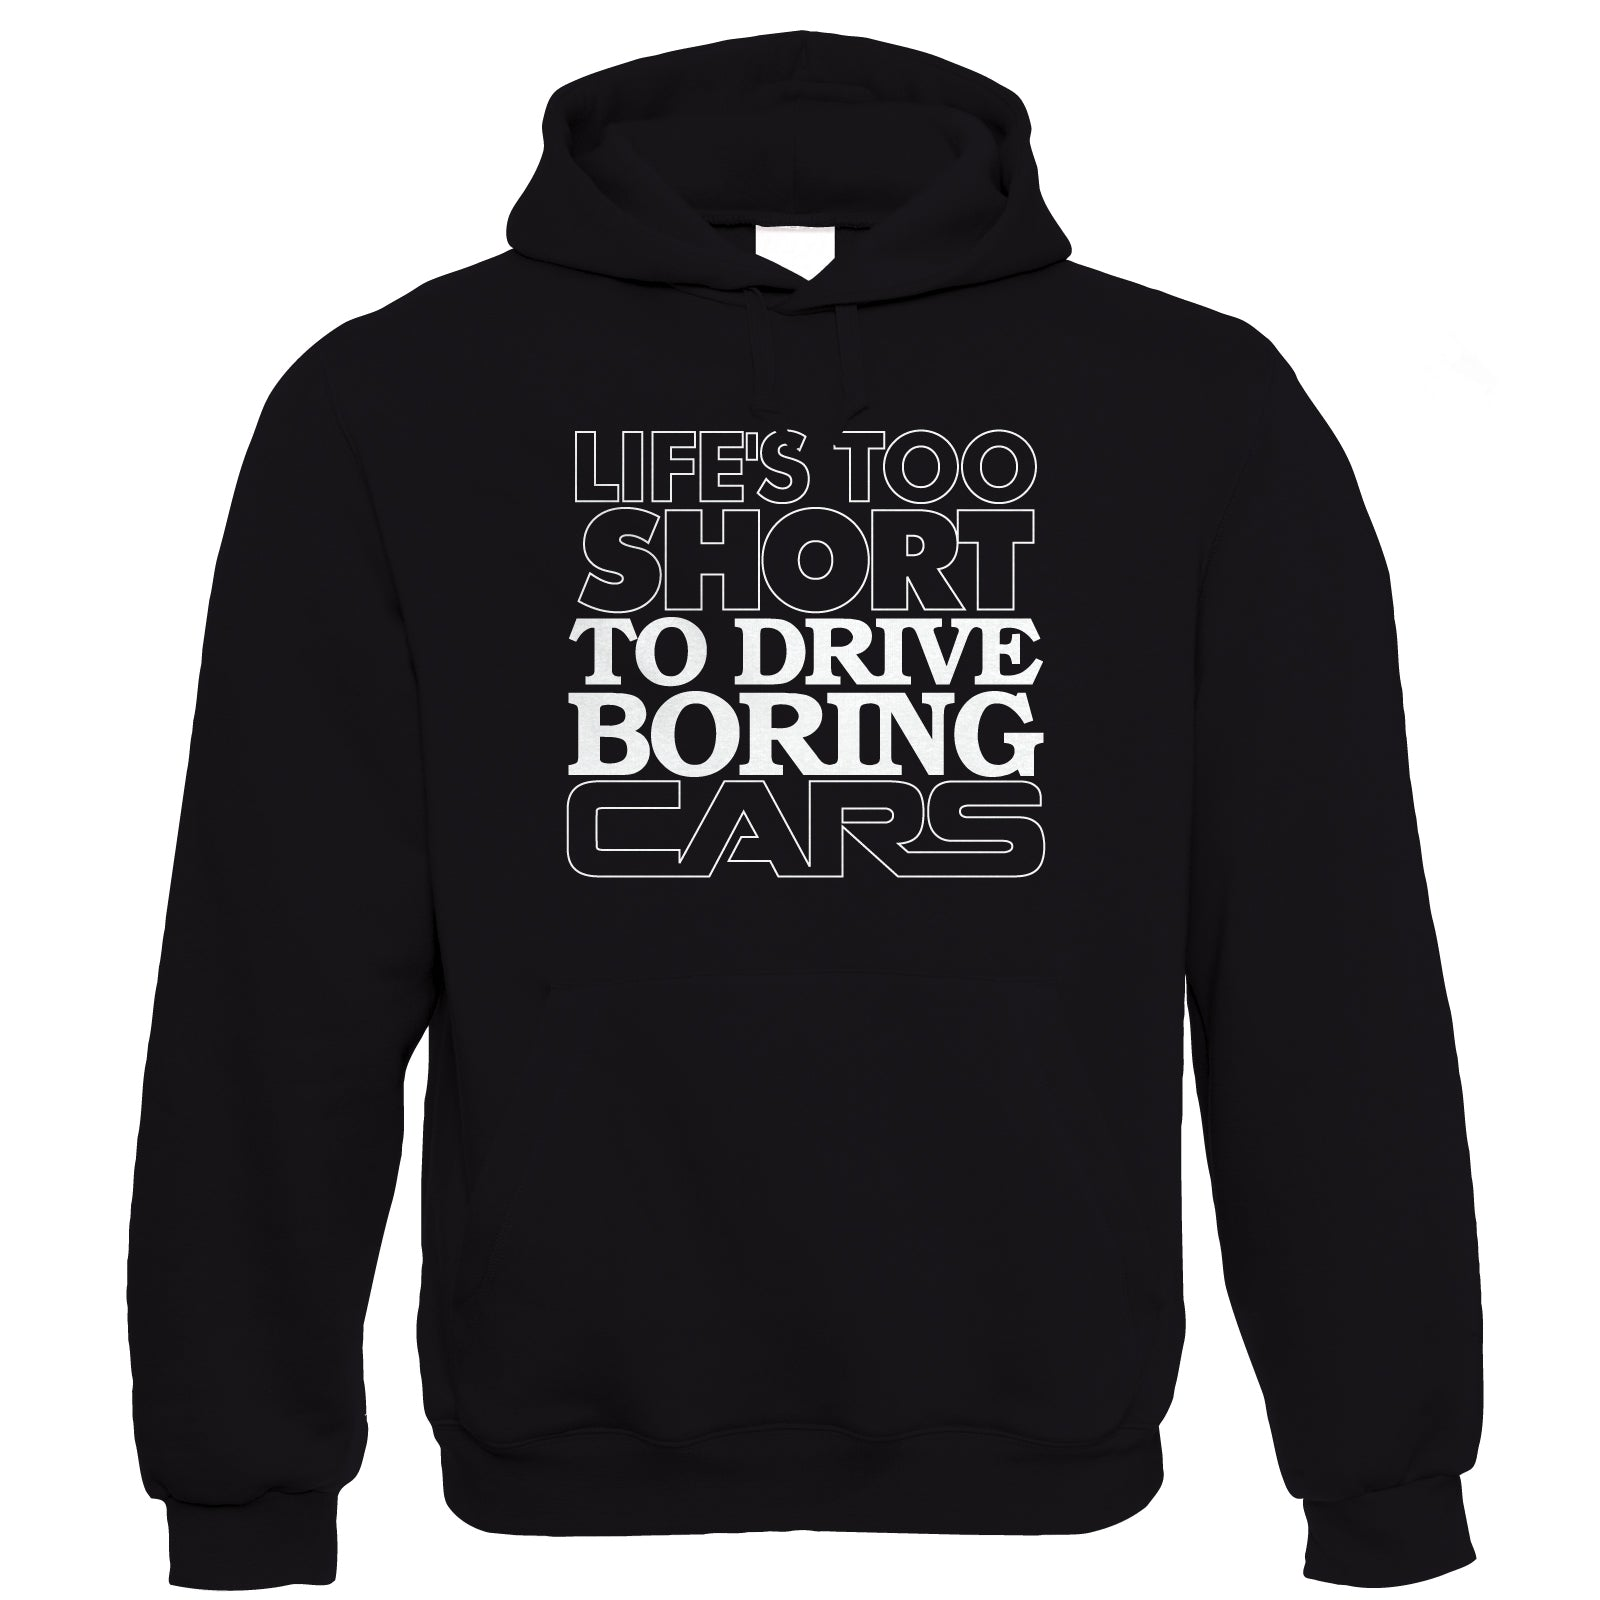 Life's Too Short to Drive Boring Cars, Funny Car Hoodie